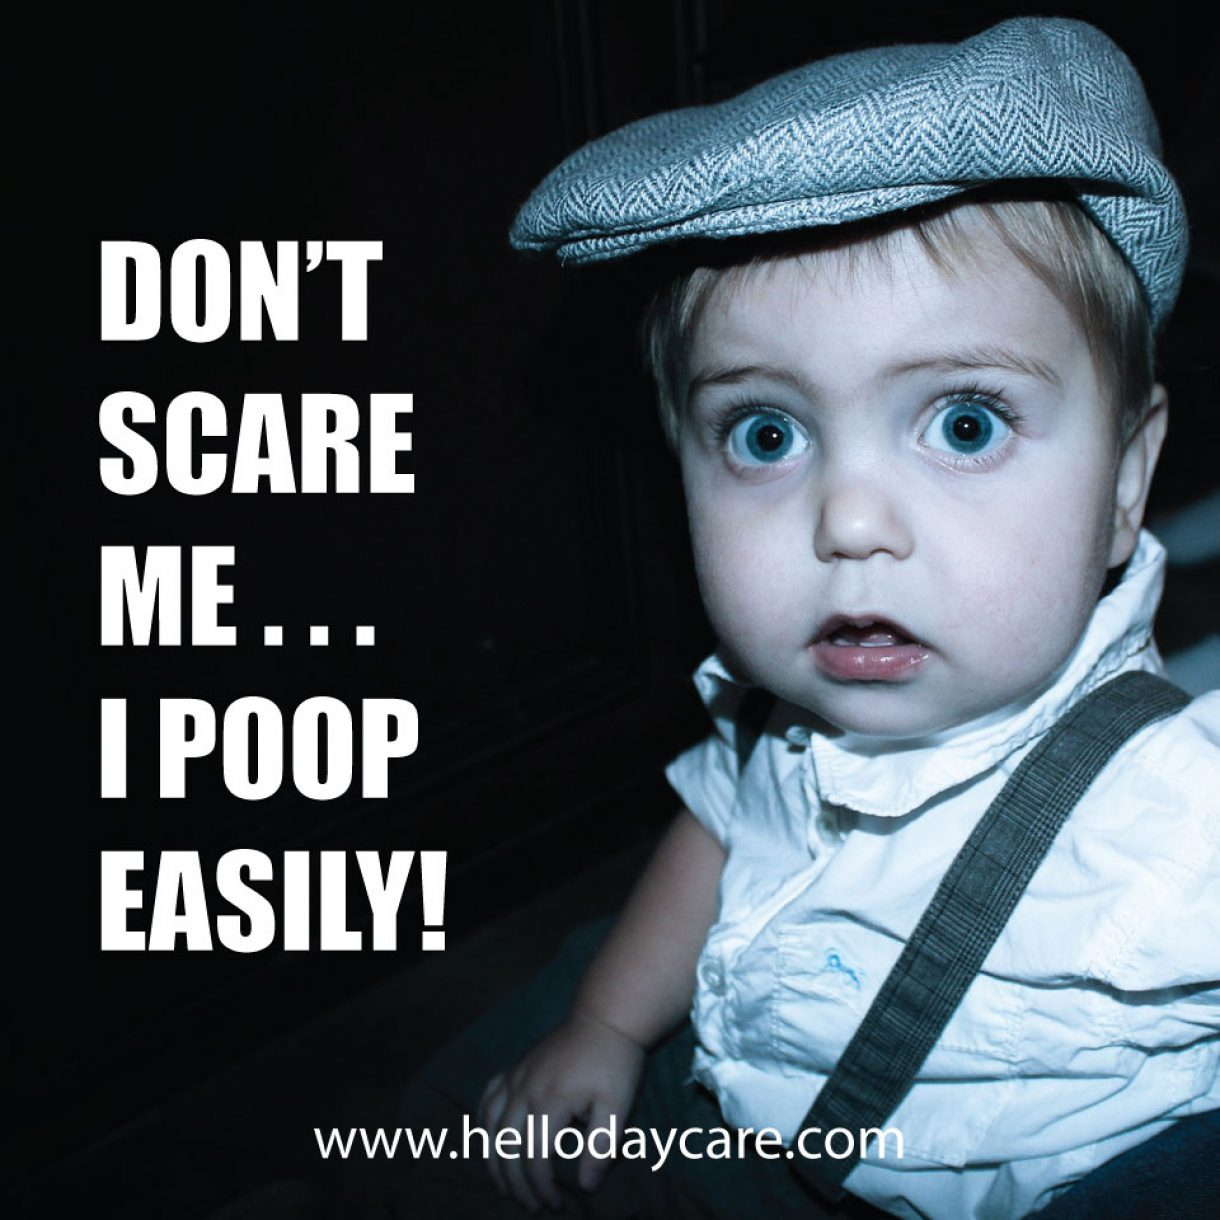 Don't Scare Me...I Poop Easily!